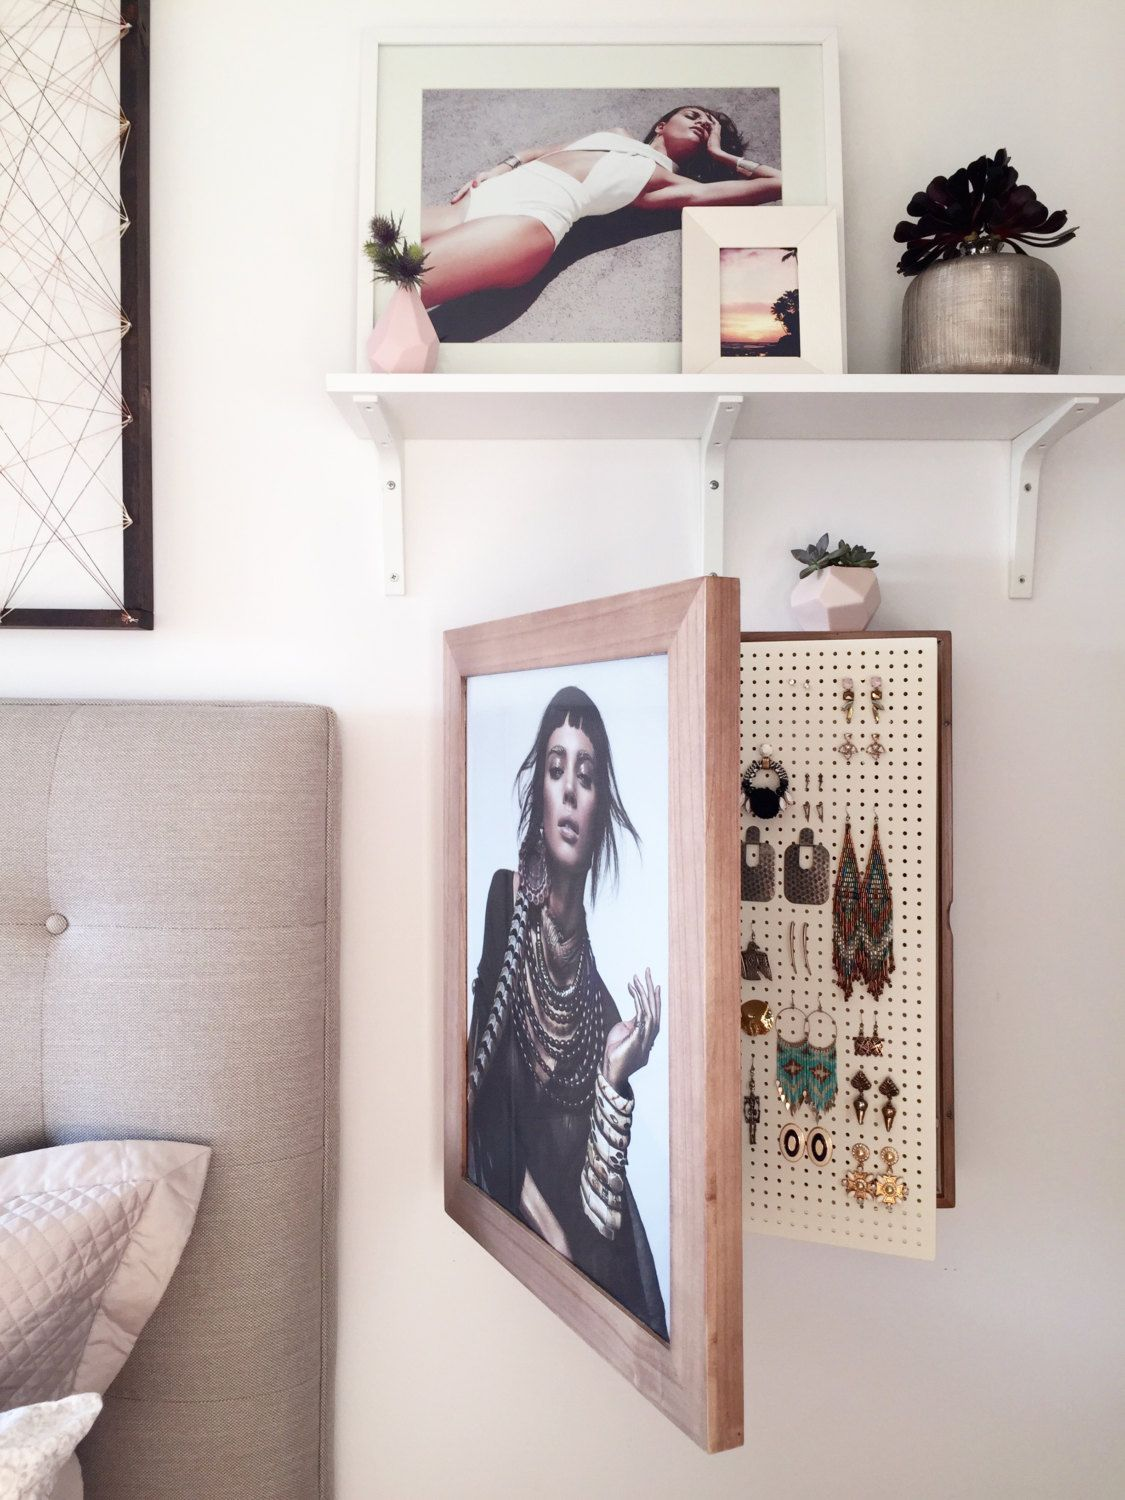 Wall Mounted Jewelry Organizer Photo Frame by bleachla on Etsy https